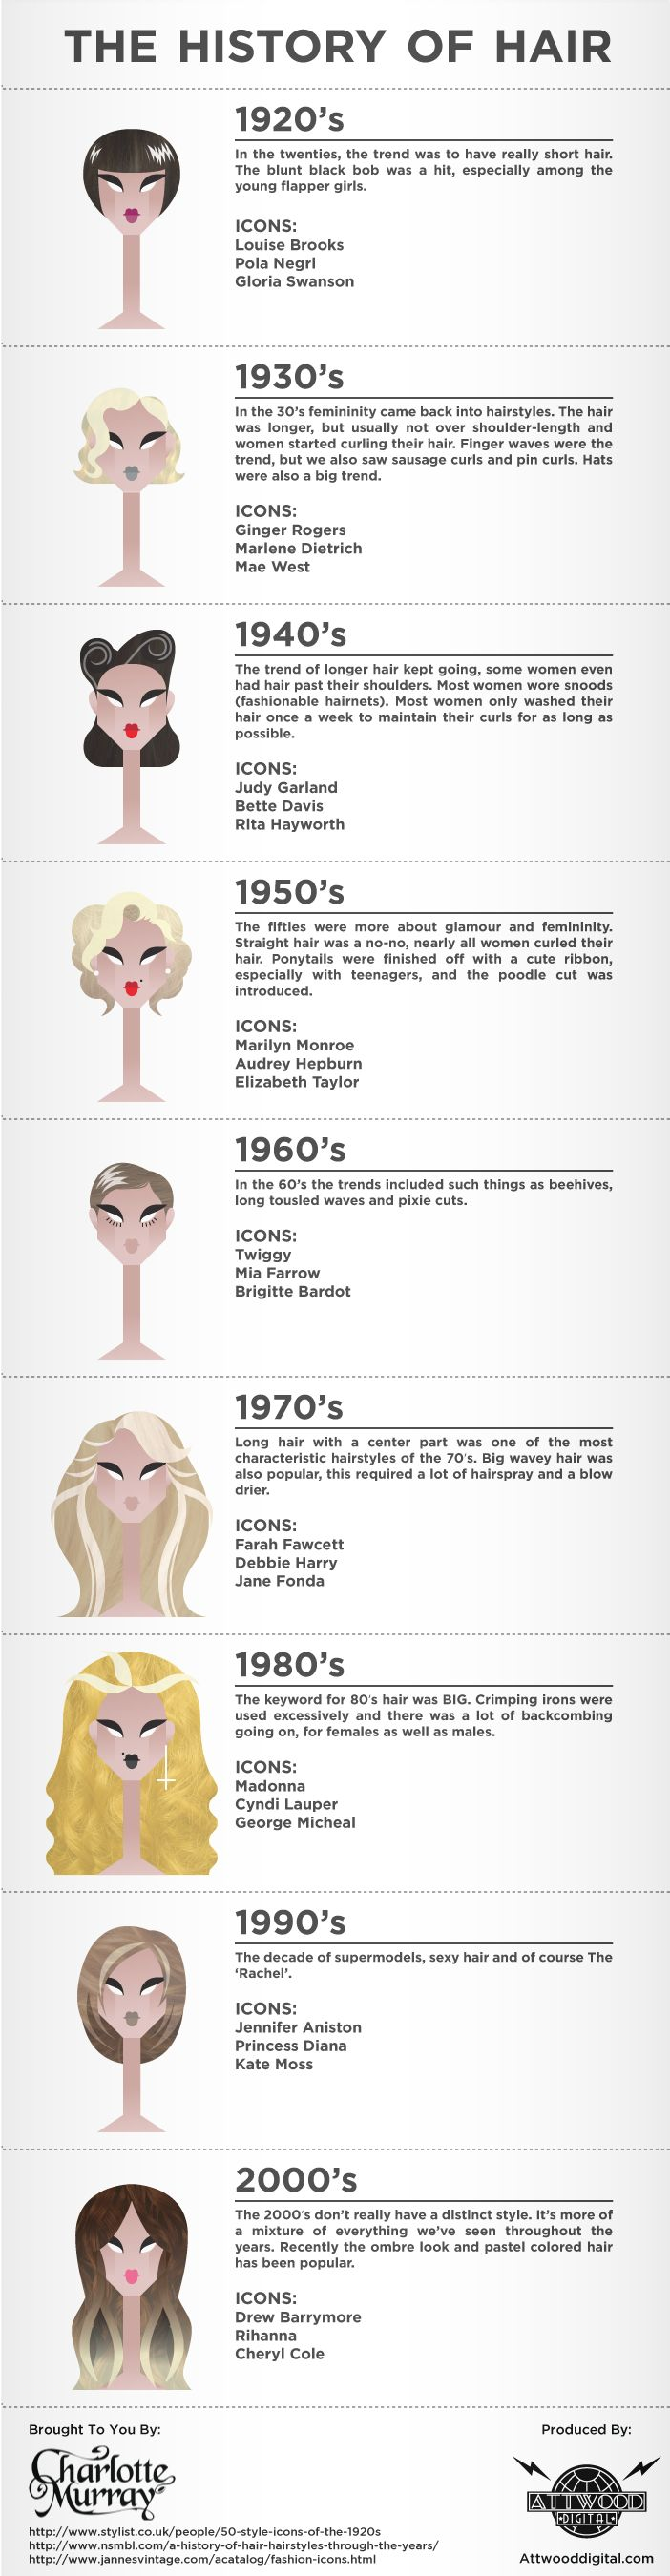 history of hair and hairstyles through the ages